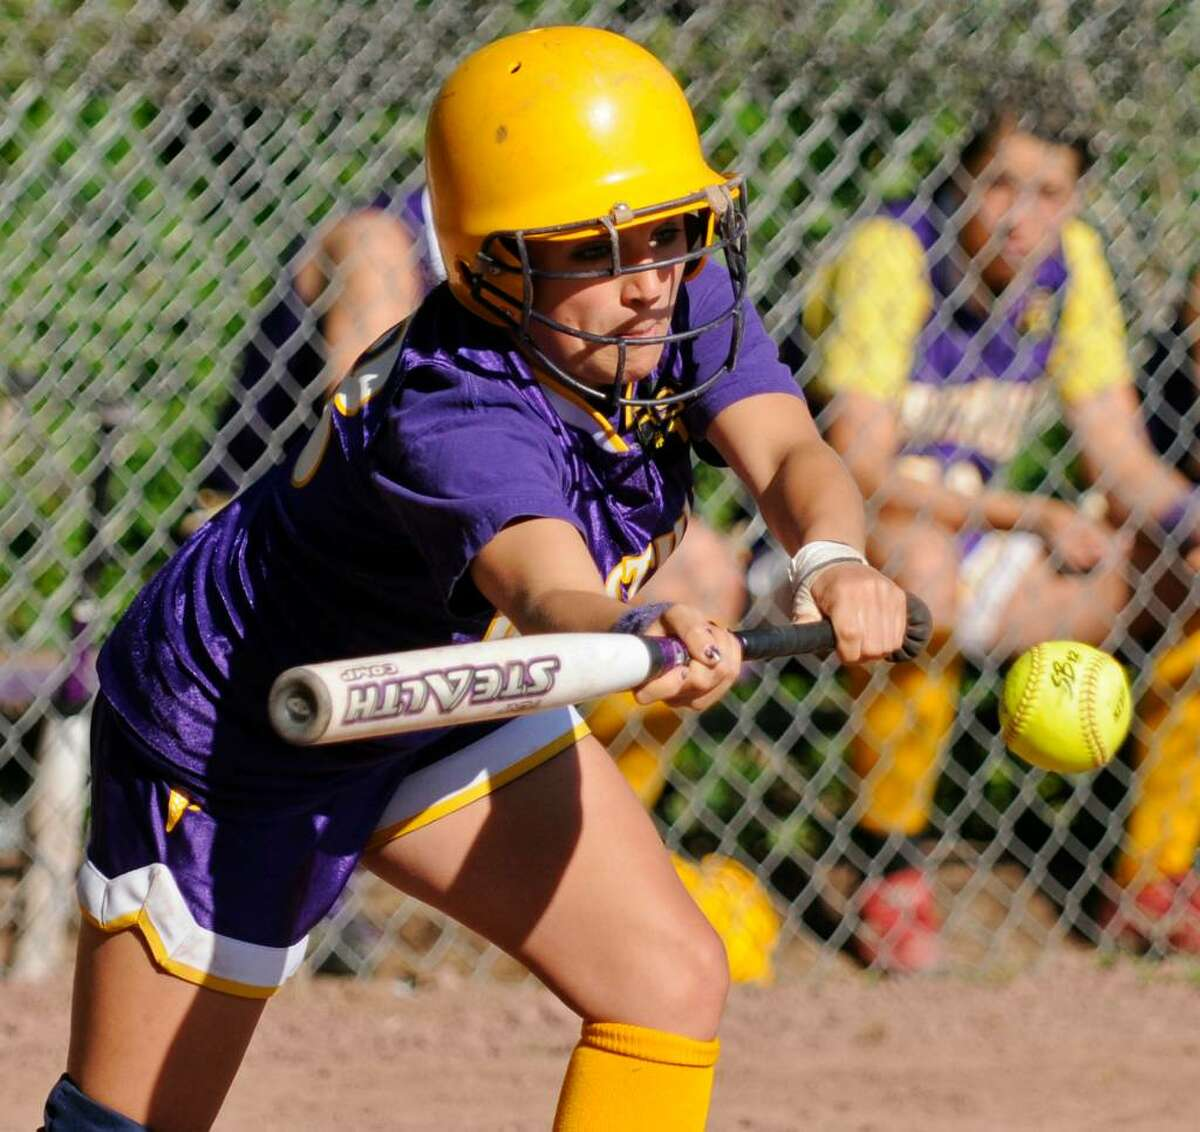 Westhill High School's Ali Souza lays down a bunt during Wednesday's game against Trumbull High School.